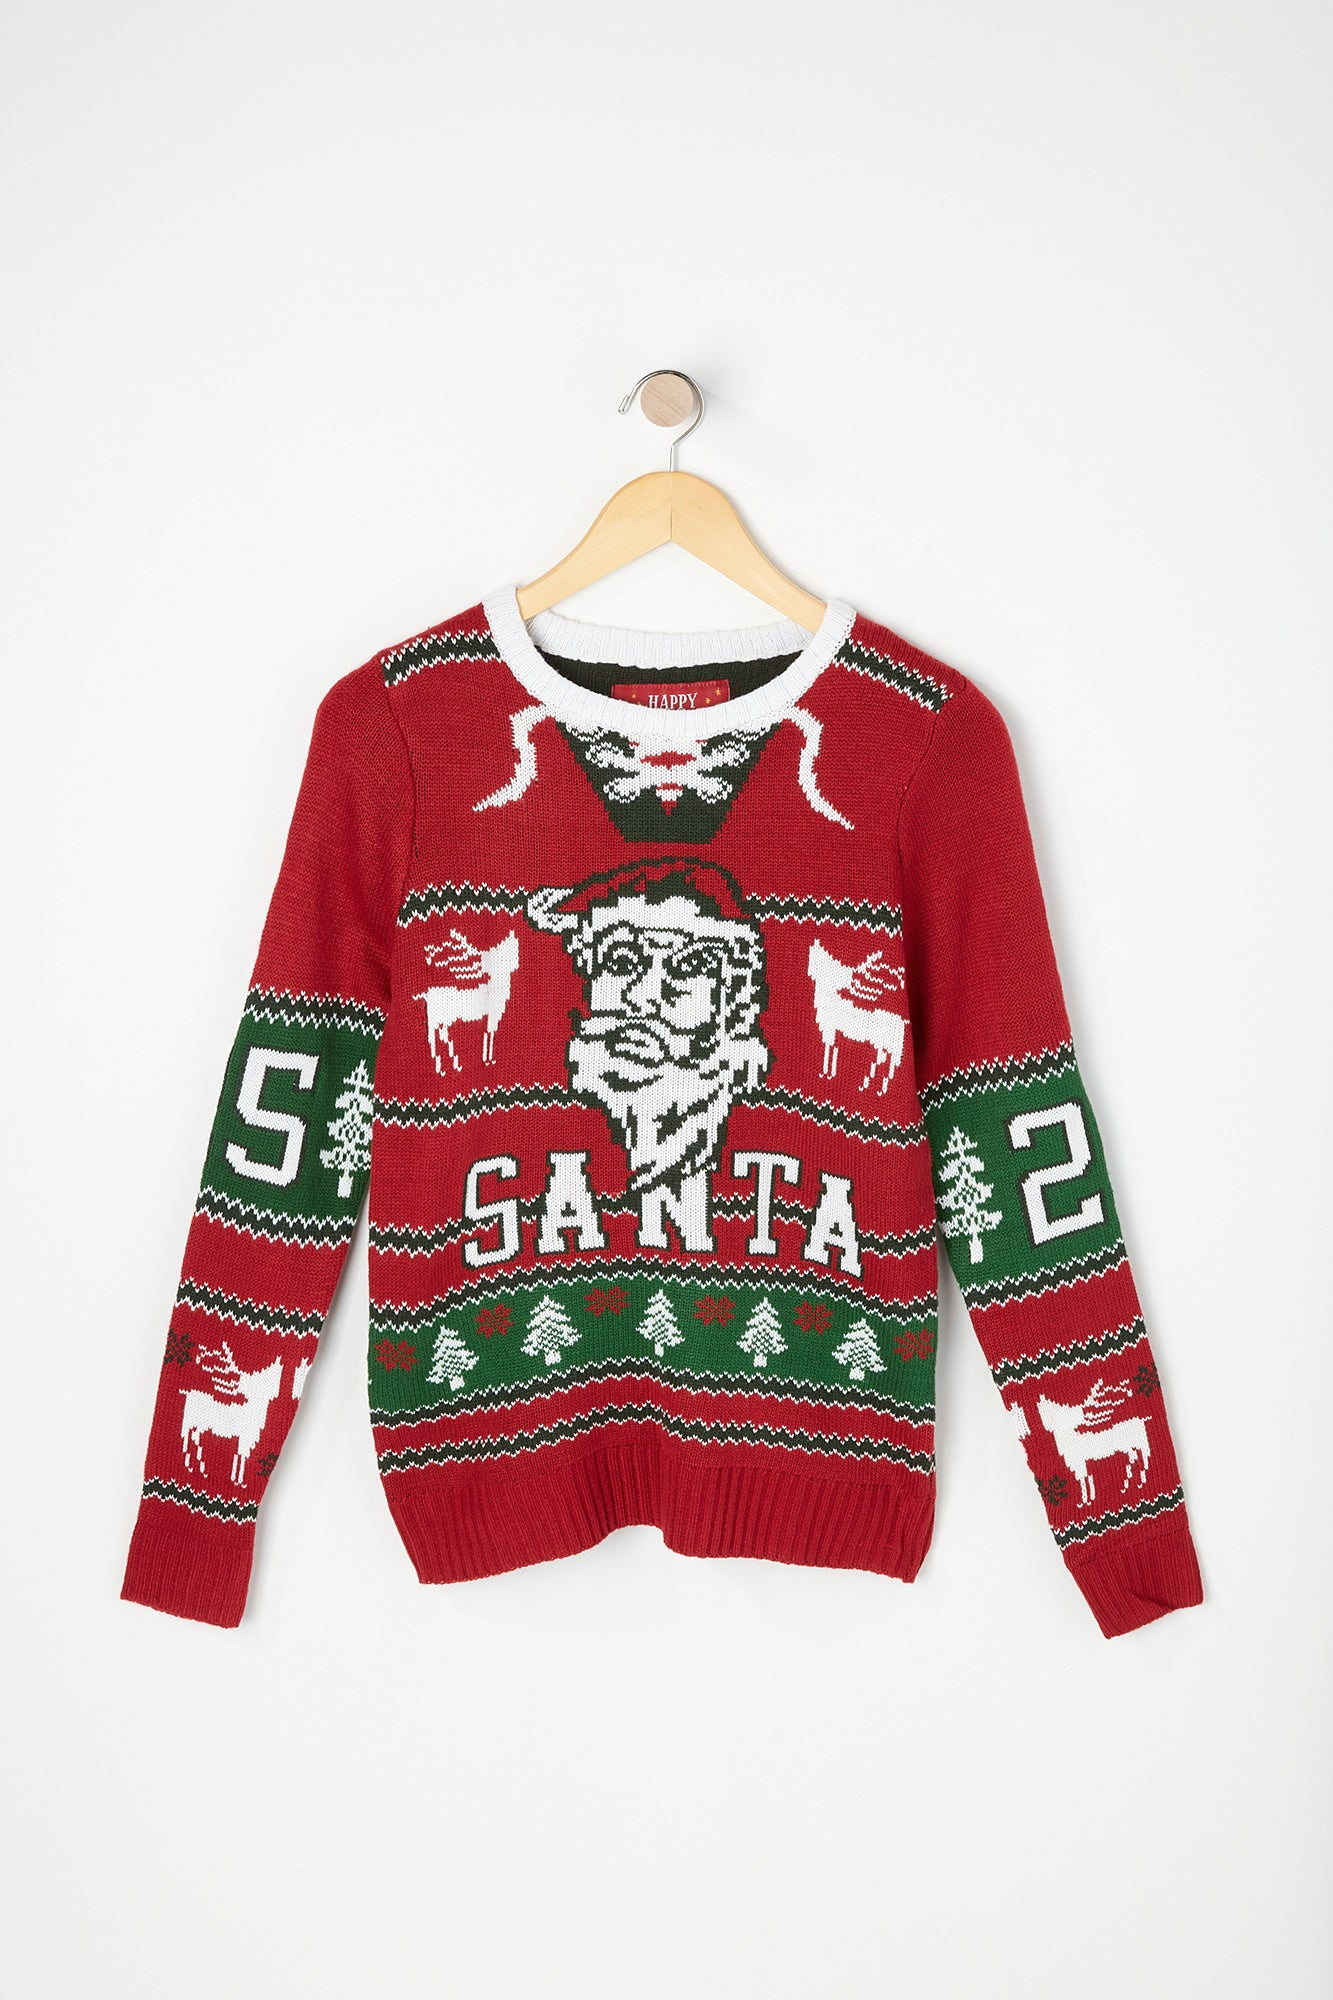 West49 Boys Varsity Santa Ugly Christmas Sweater